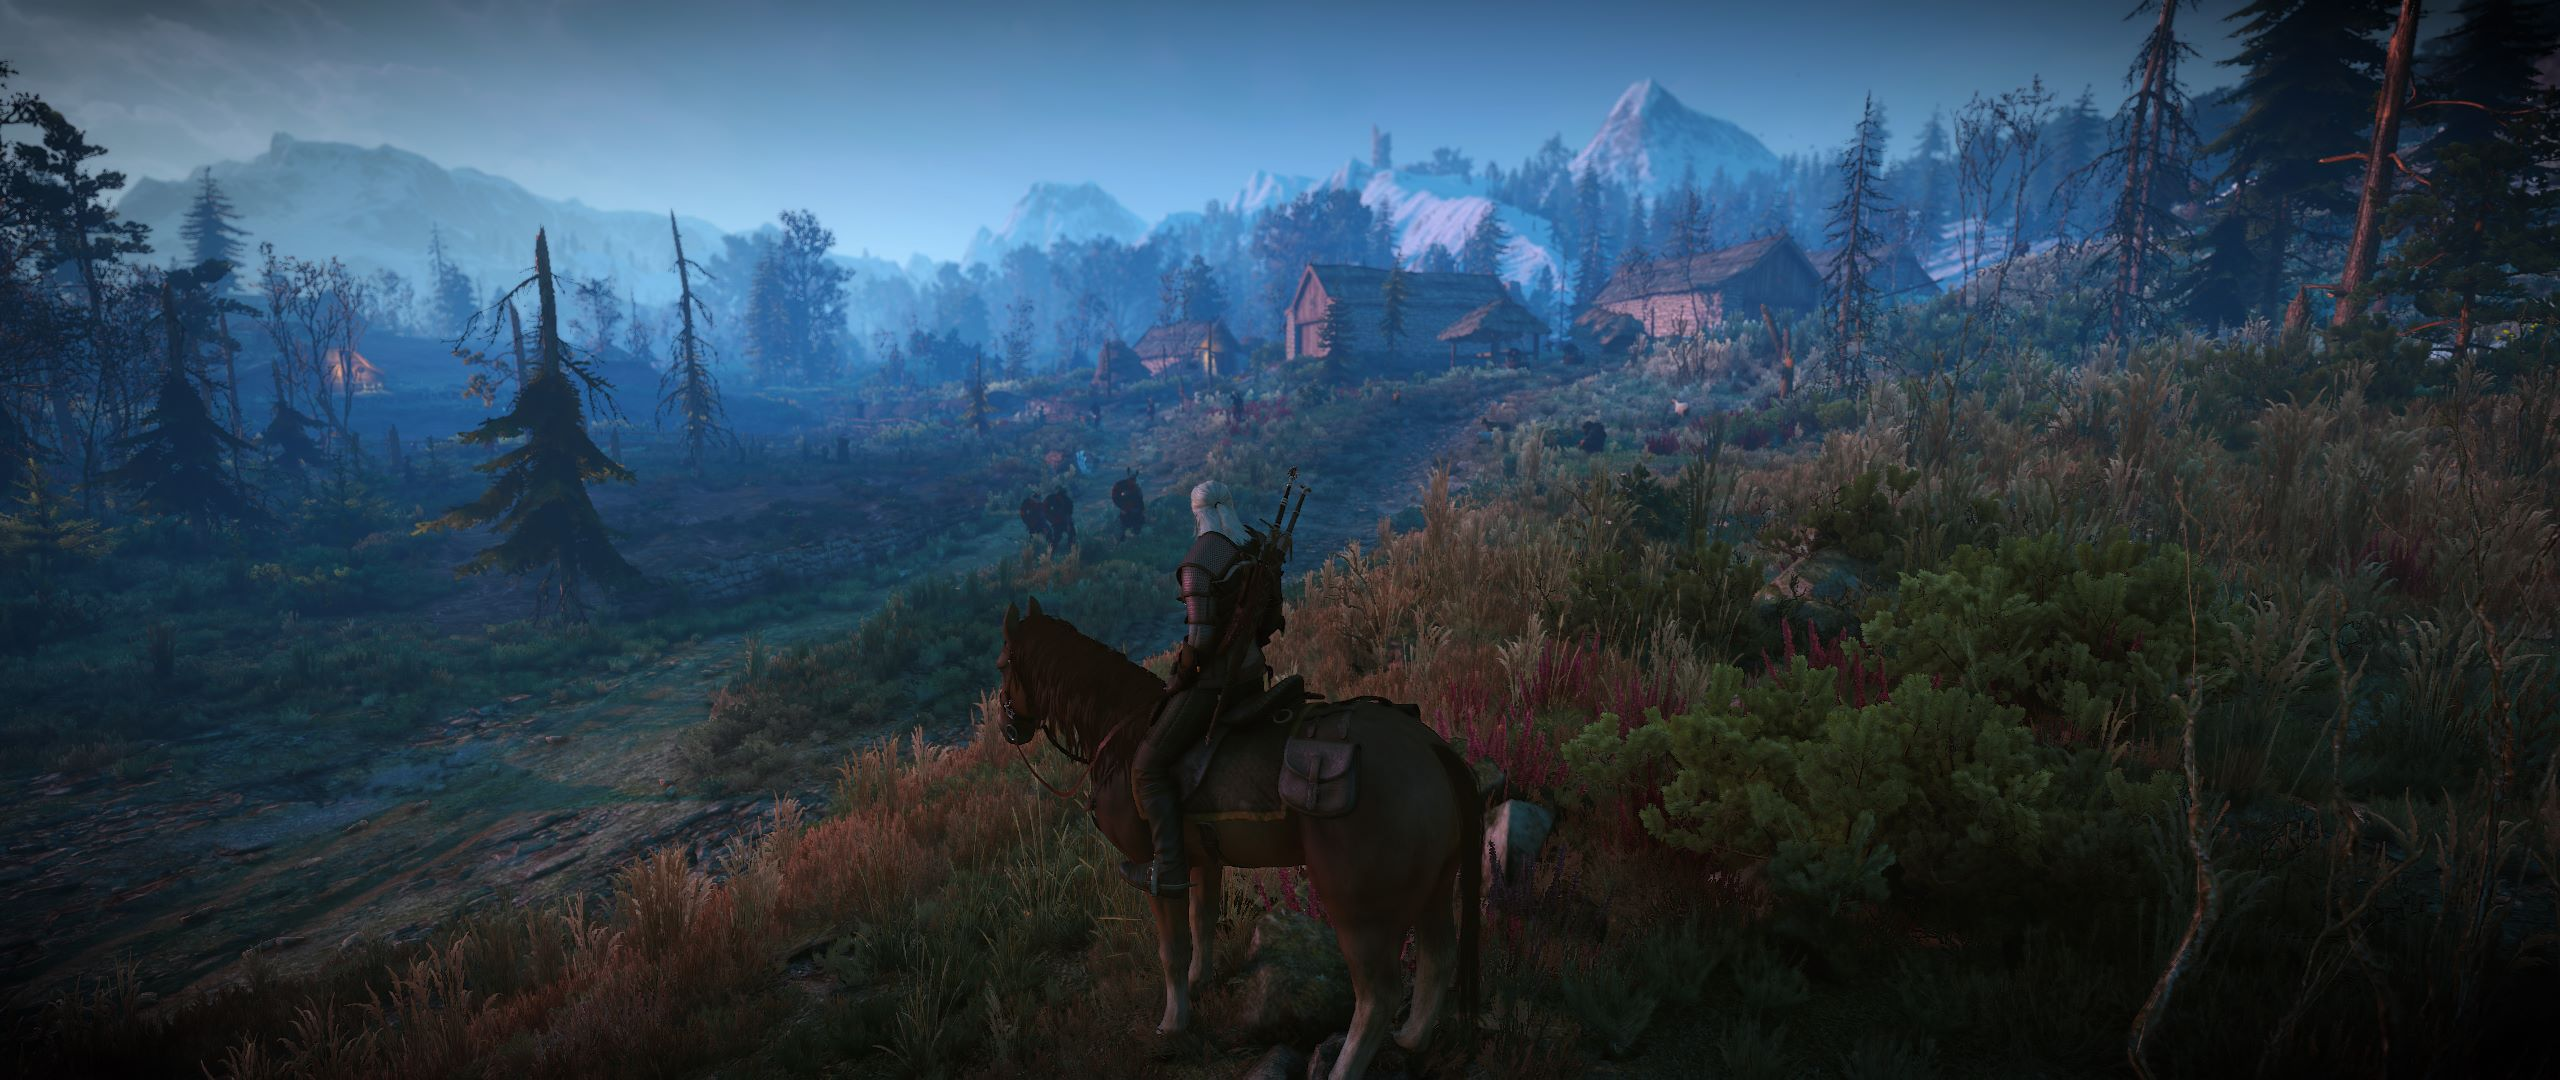 The Witcher 3 Super Turbo Lighting Mod Brings Much Sharper